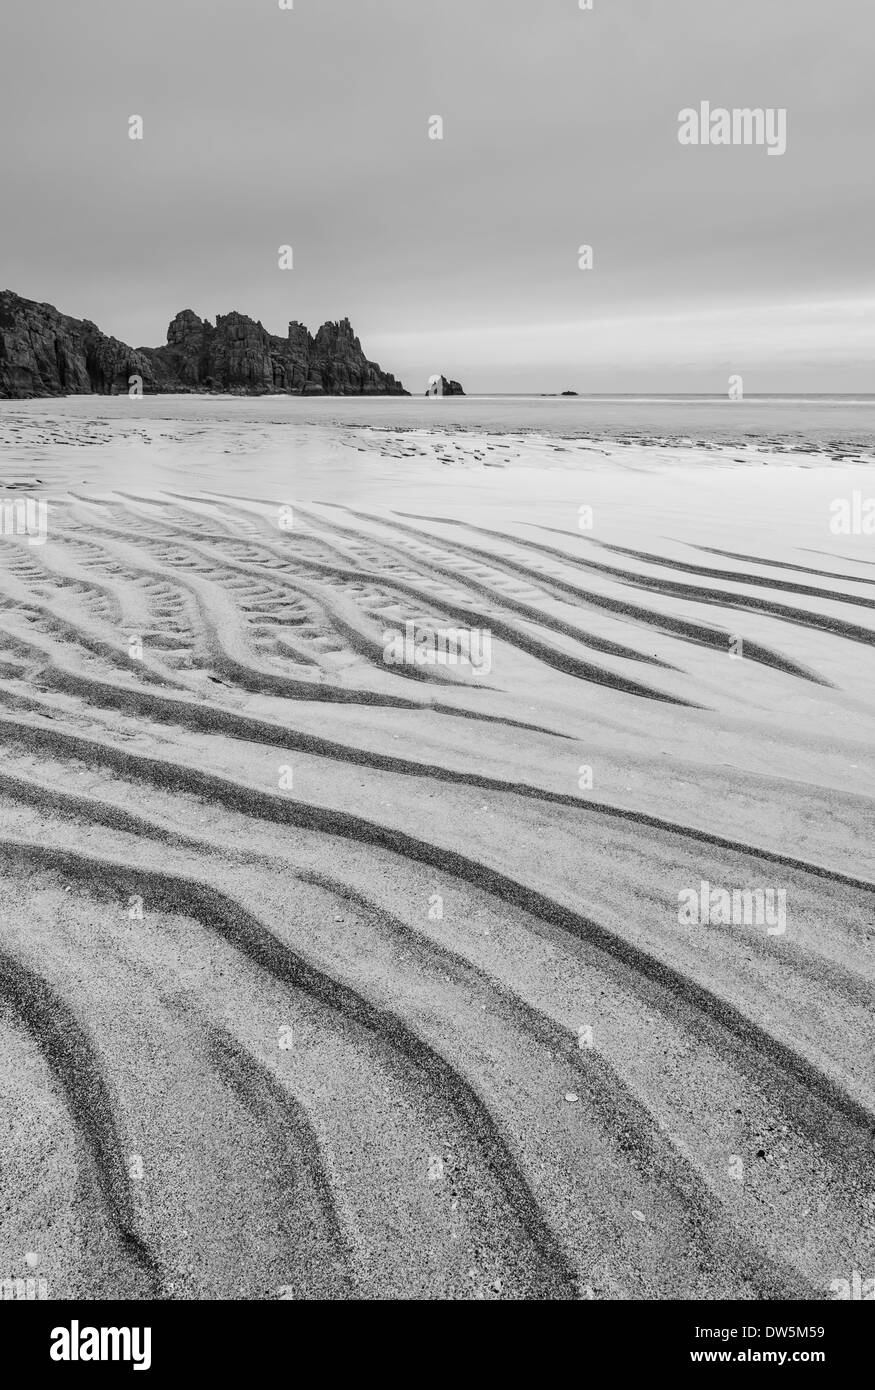 Sand ripples at low tide on Pednvounder Beach, Cornwall, England. Winter (February) 2013 - Stock Image